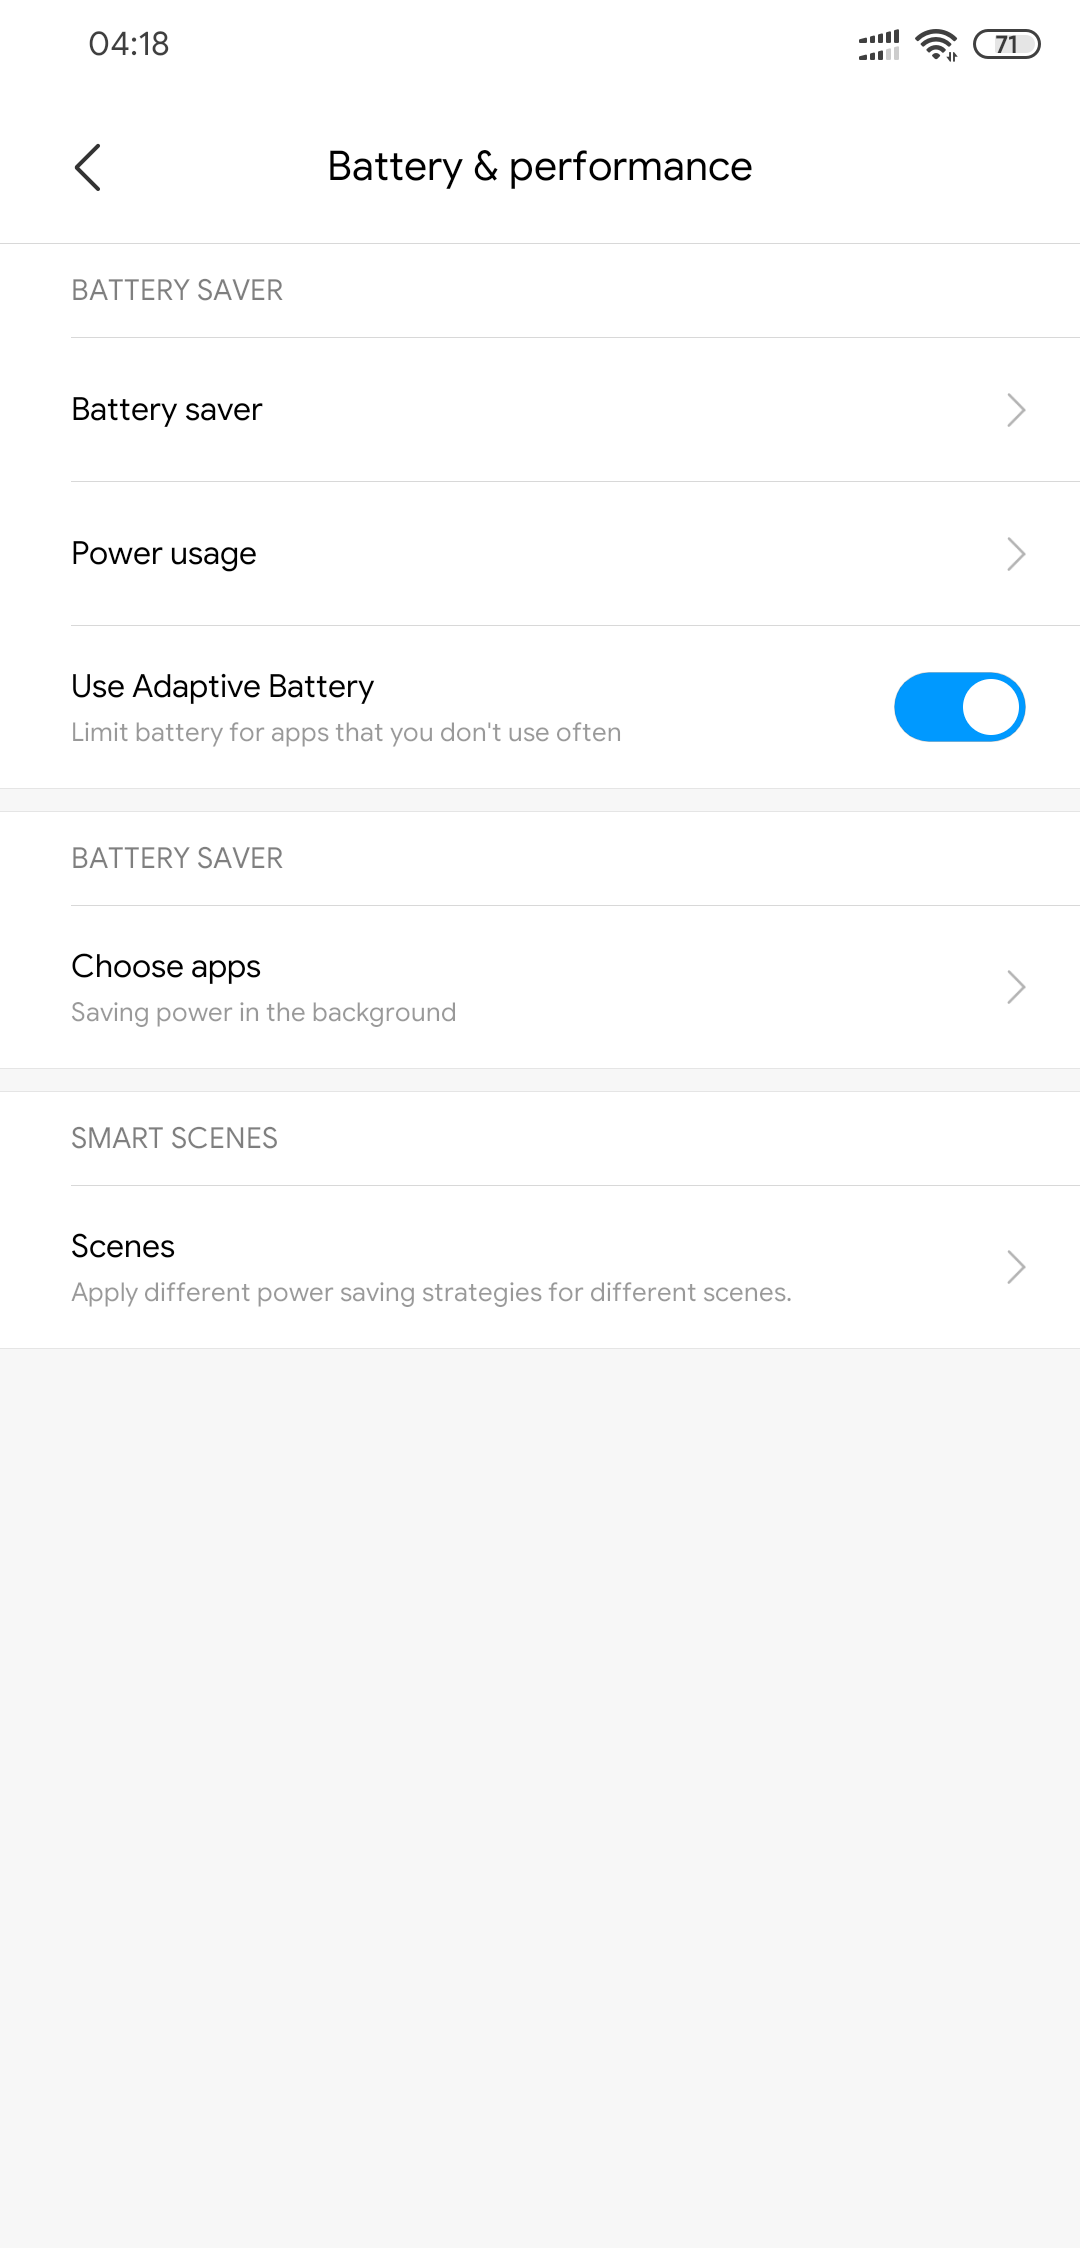 Screenshot_2019-01-12-04-18-49-455_com.miui.powerkeeper.png